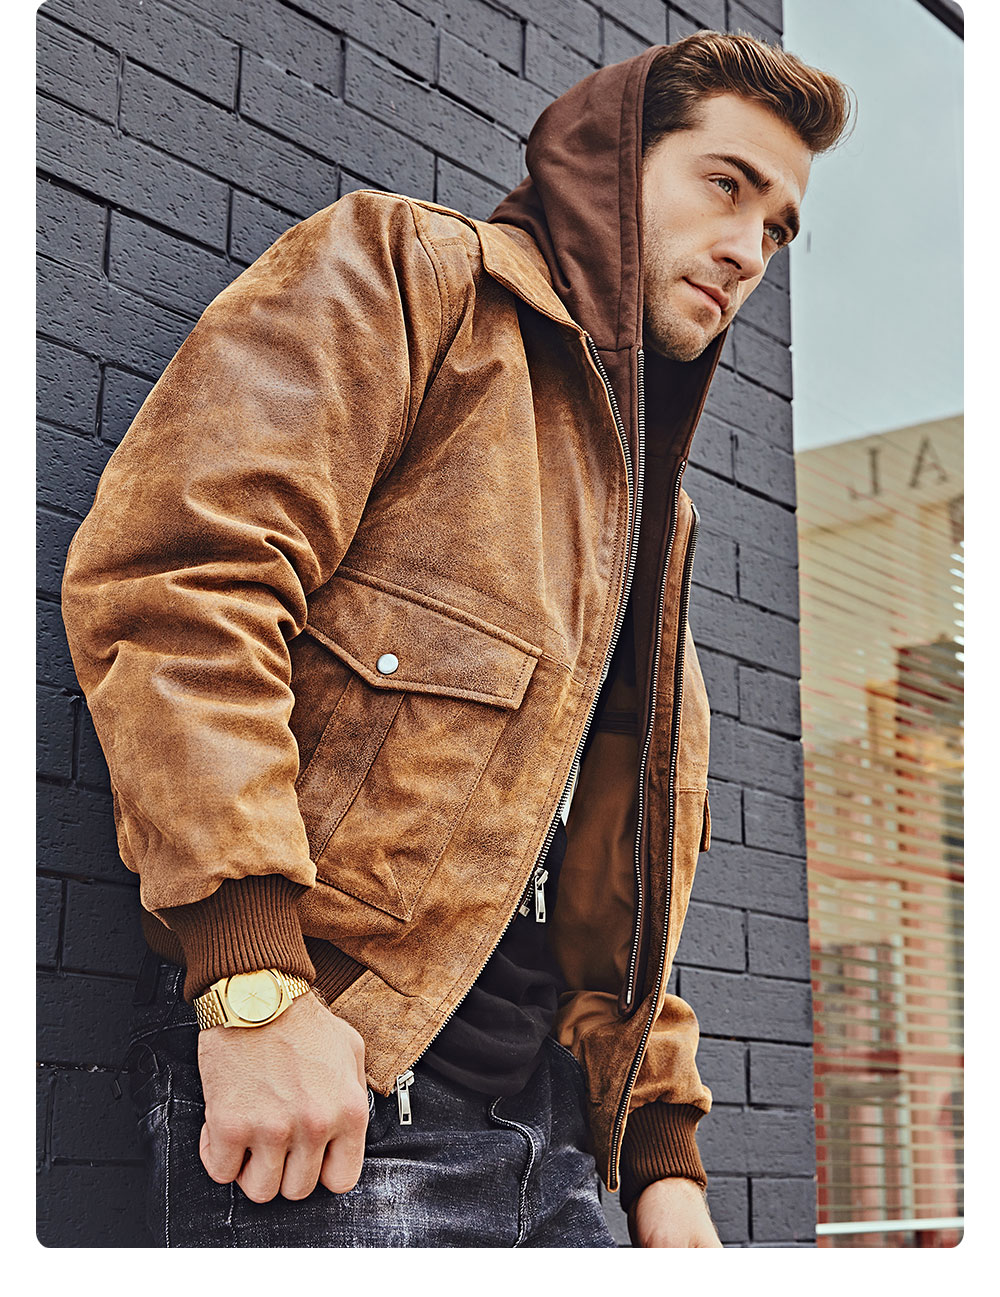 Hf83a3ad18e874578a6ef6921e3ad7244B FLAVOR New Men's Genuine Leather Bomber Jackets Removable Hood Men Air Forca Aviator winter coat Men Warm Real Leather Jacket